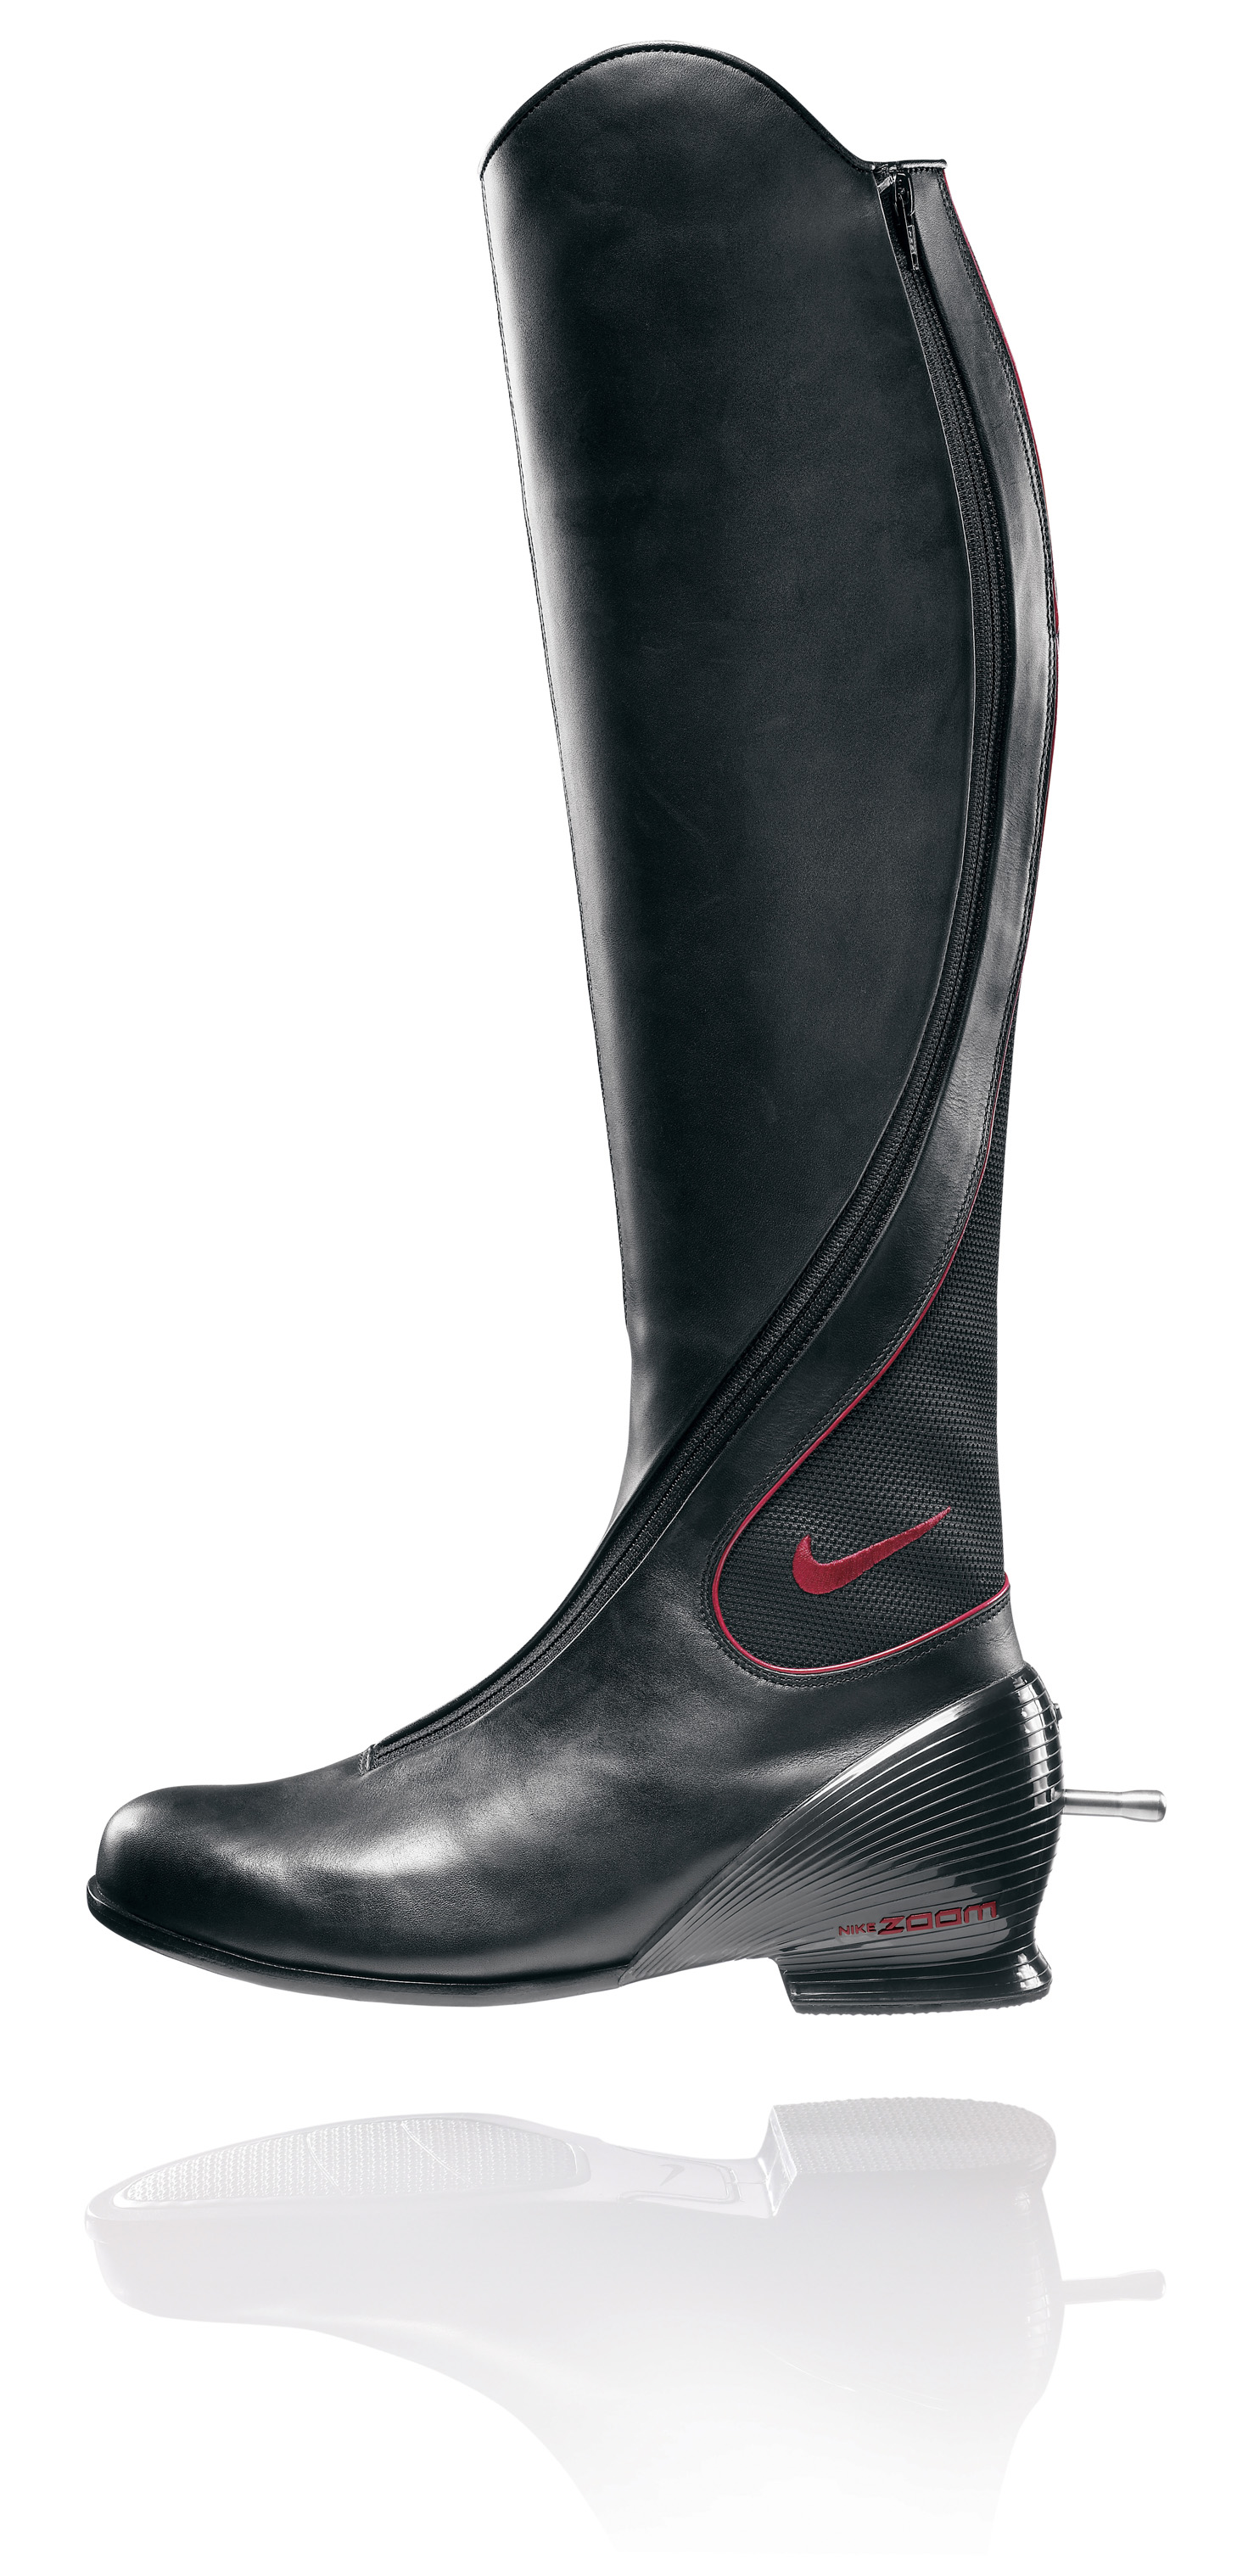 Nike Ippeas equestrian boots